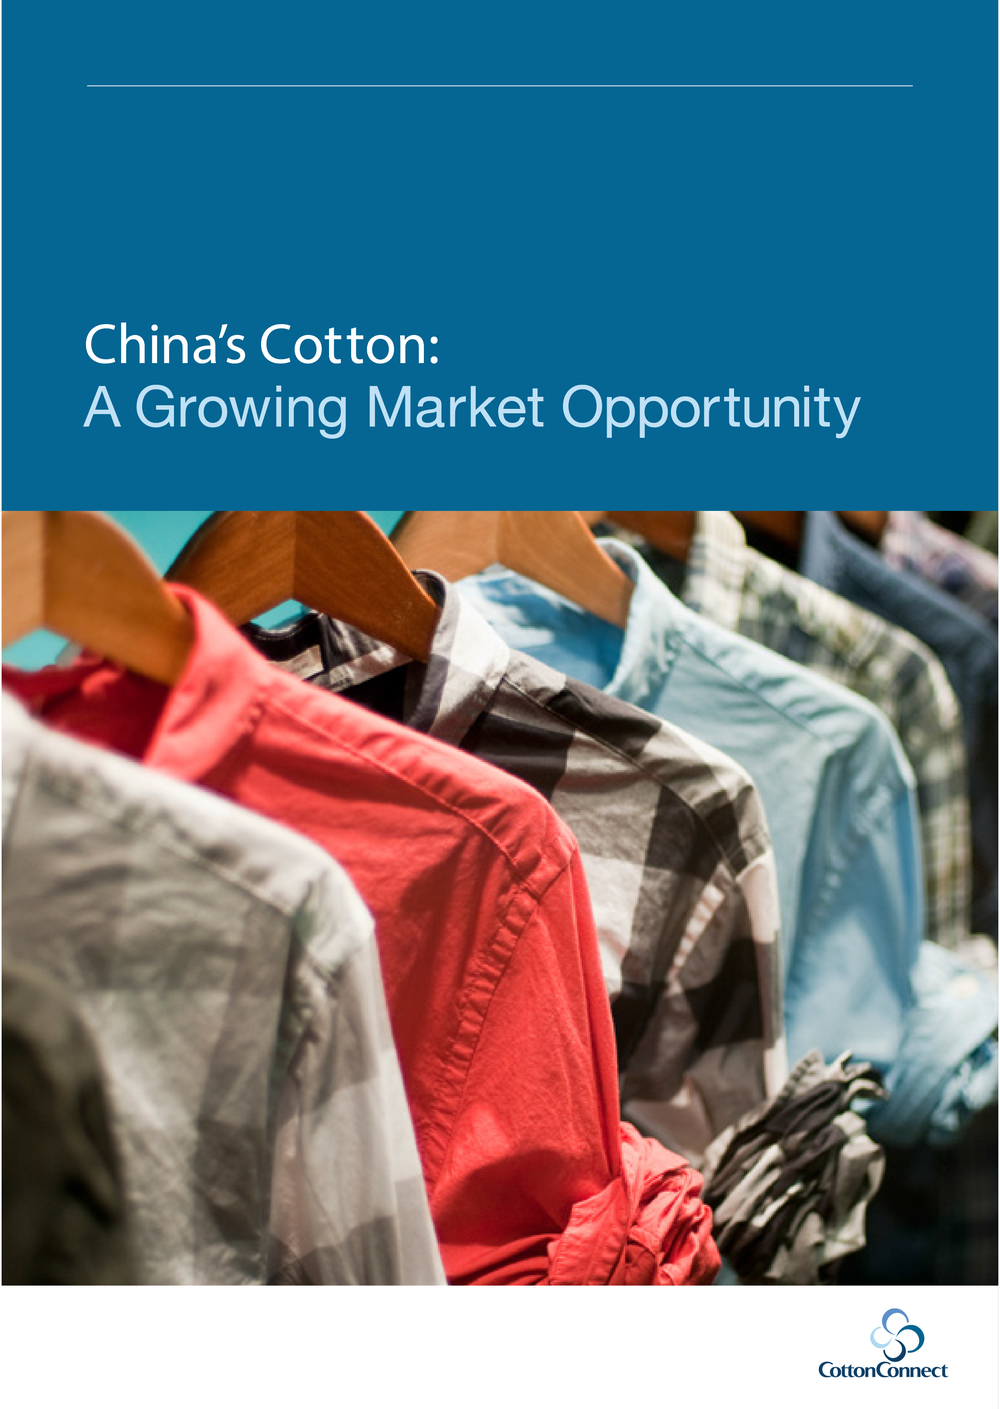 CottonConnect China Report 2015.jpg